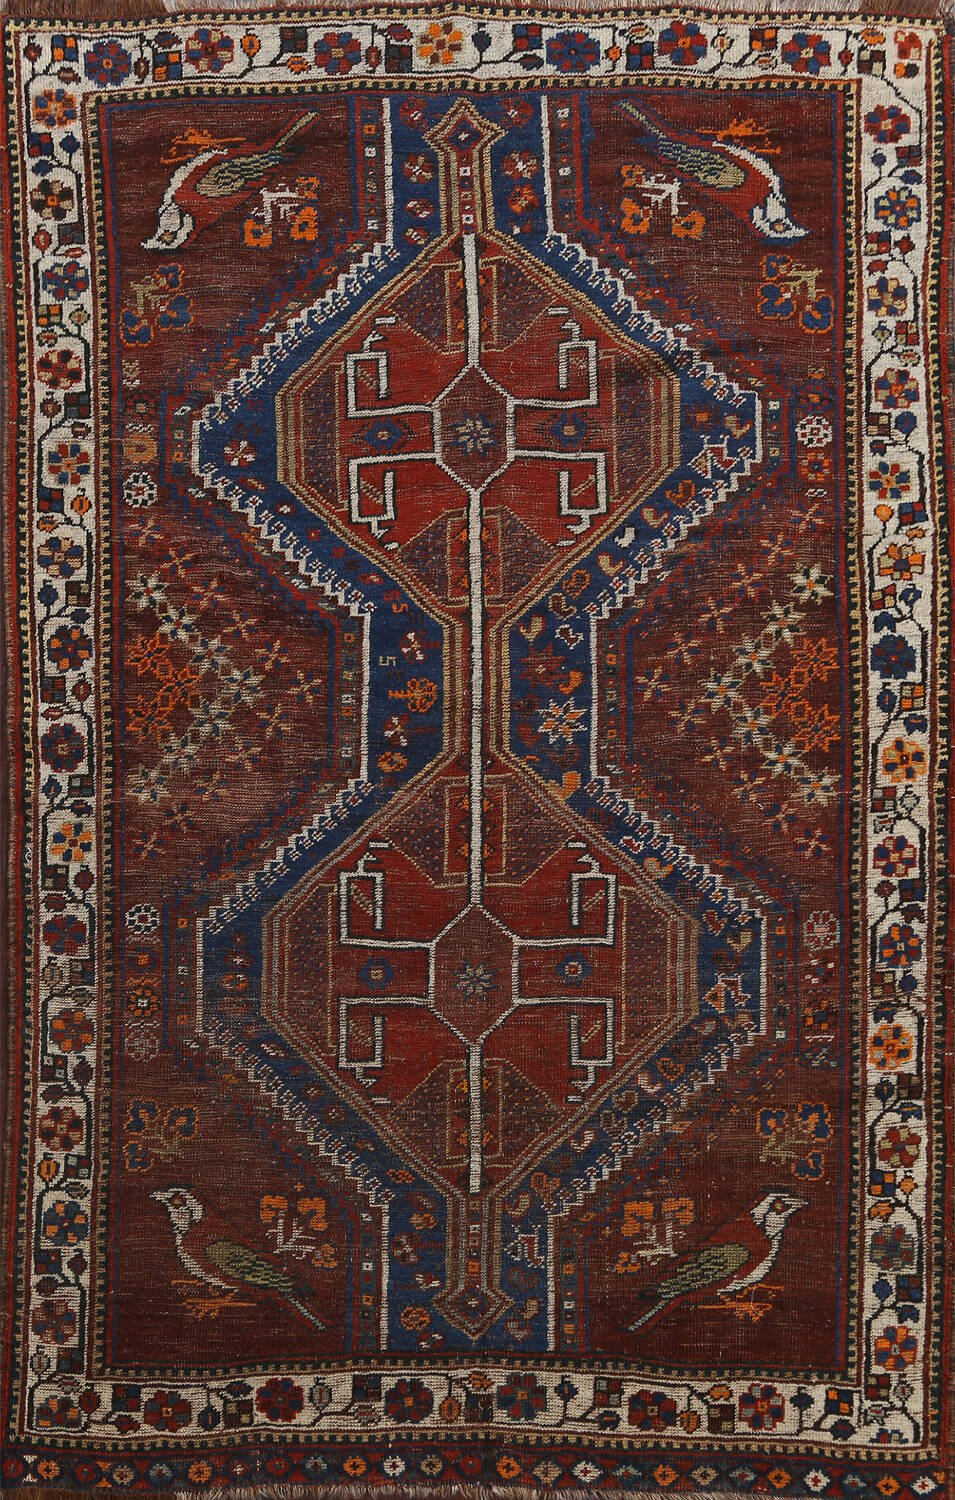 Pre-1900 Antique Ghashghaie Persian Area Rug 5x6 image 1